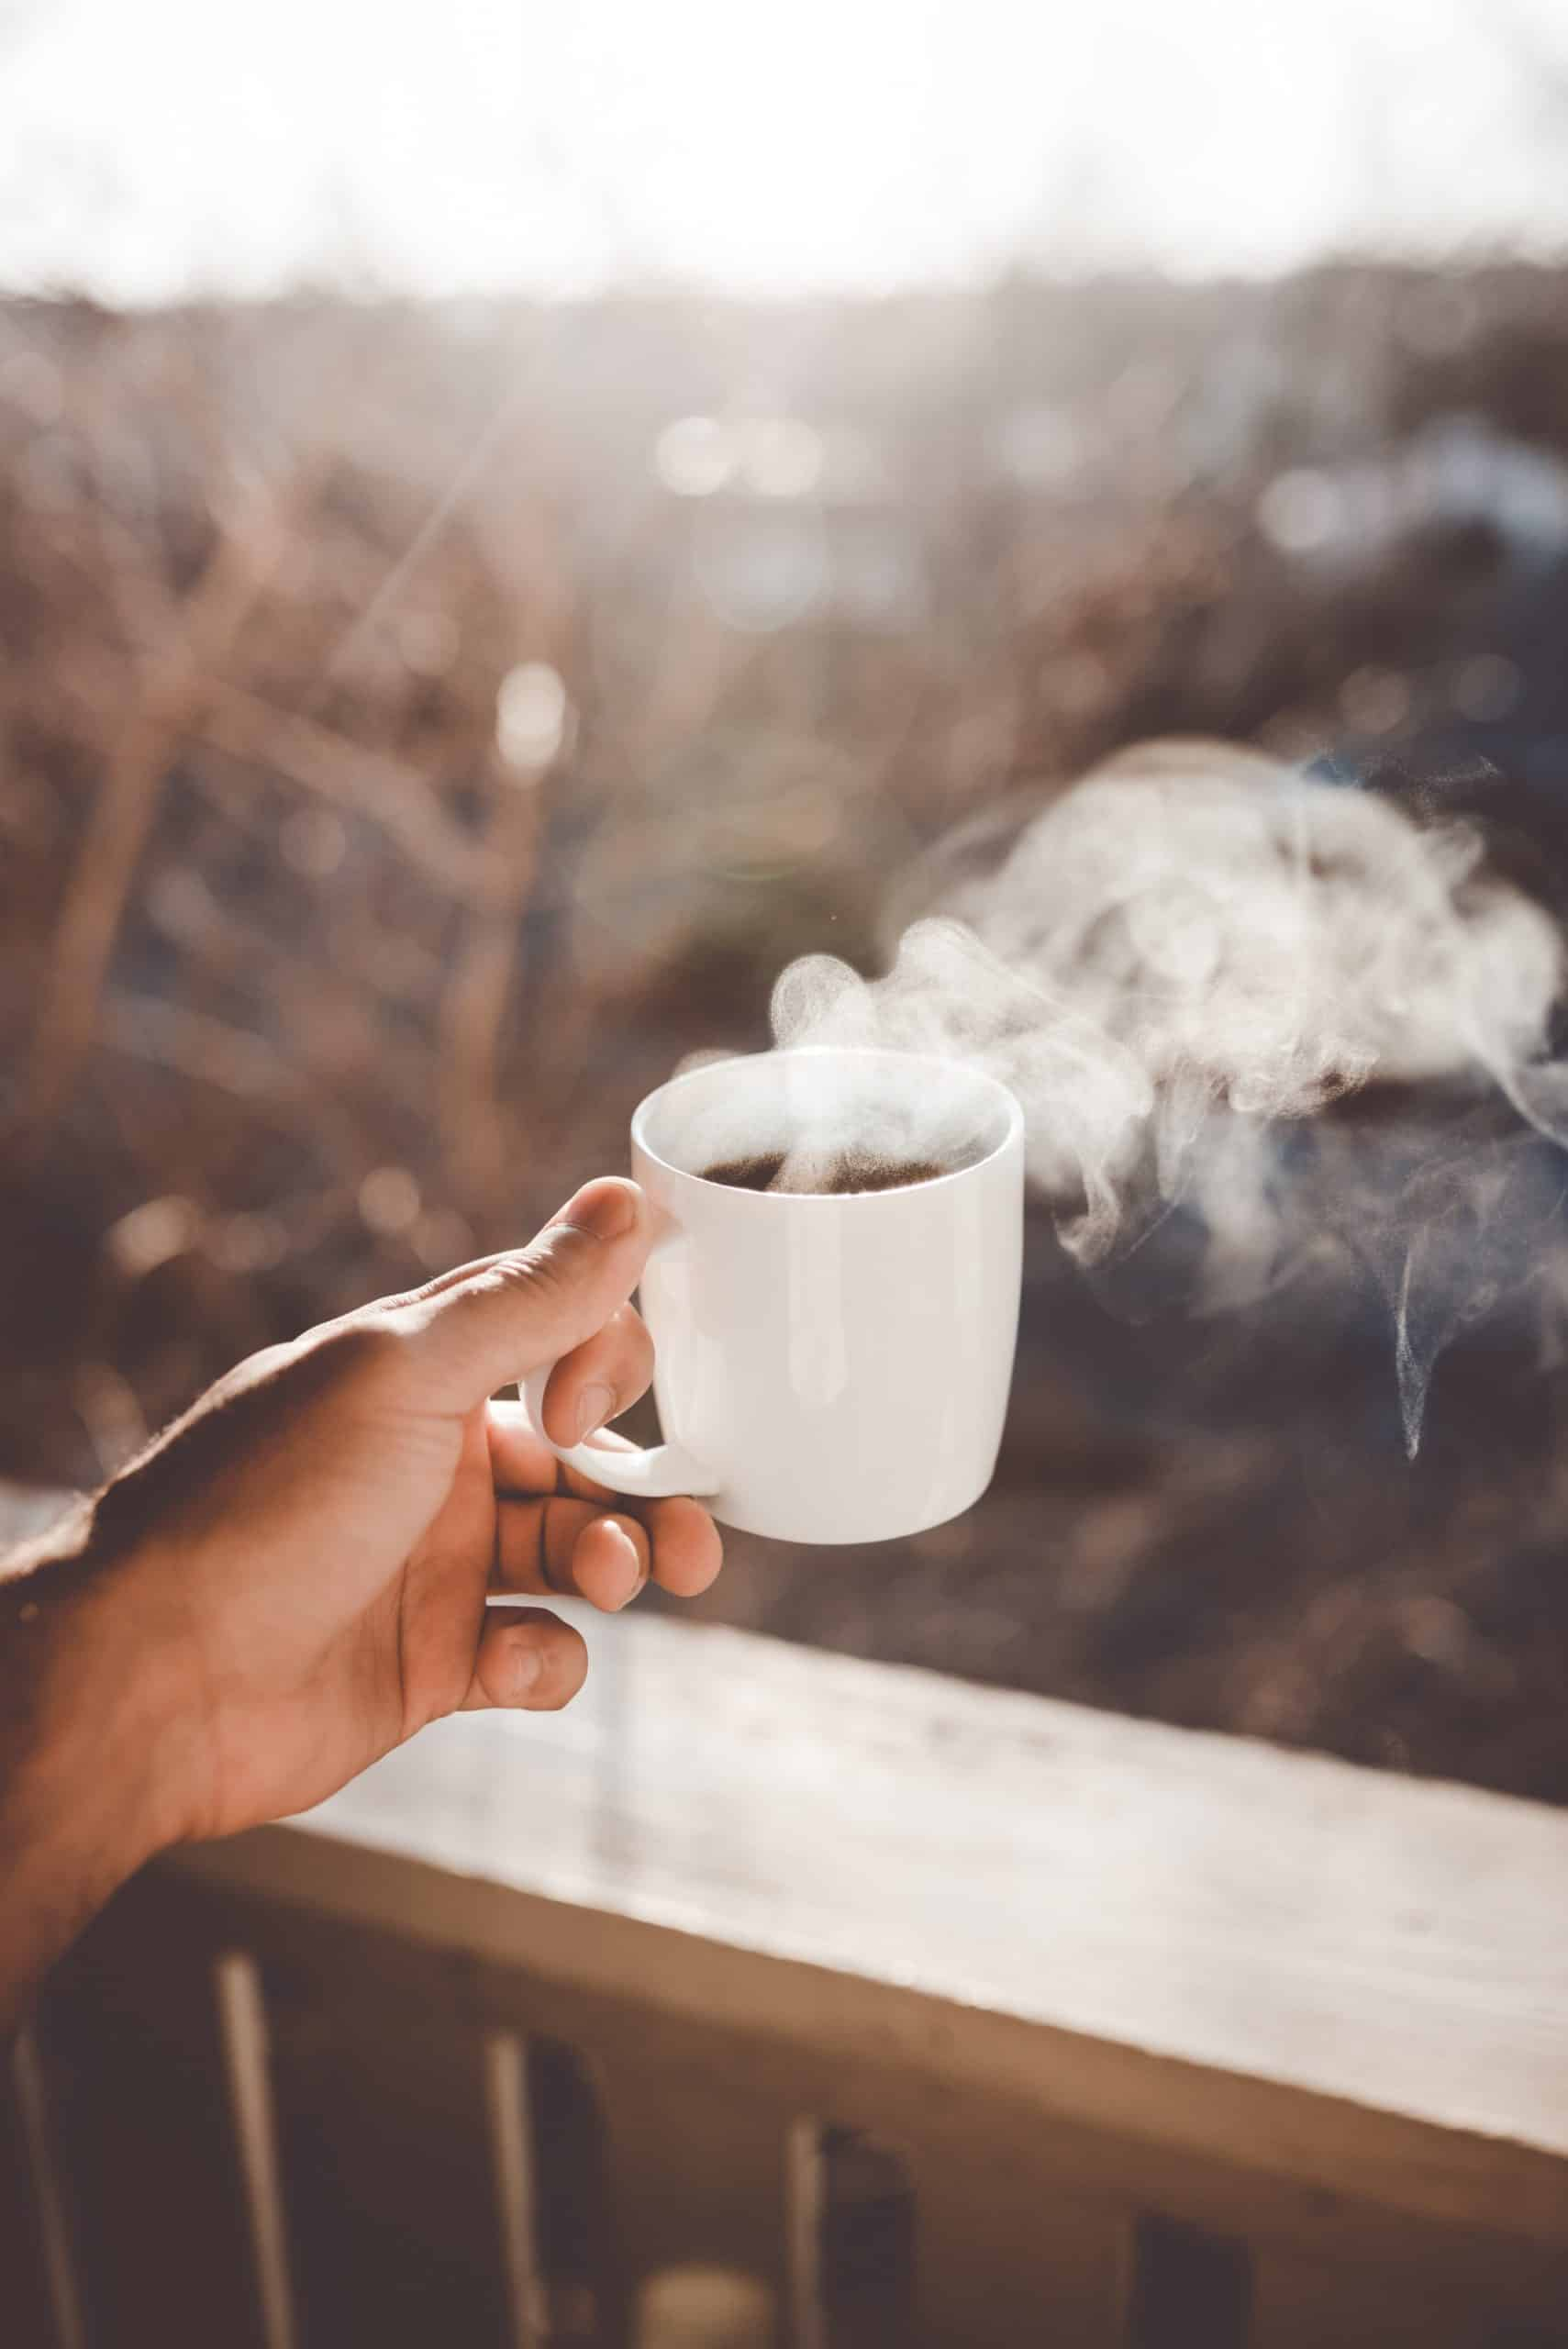 Coffee Cup: How To Make Use Of It?